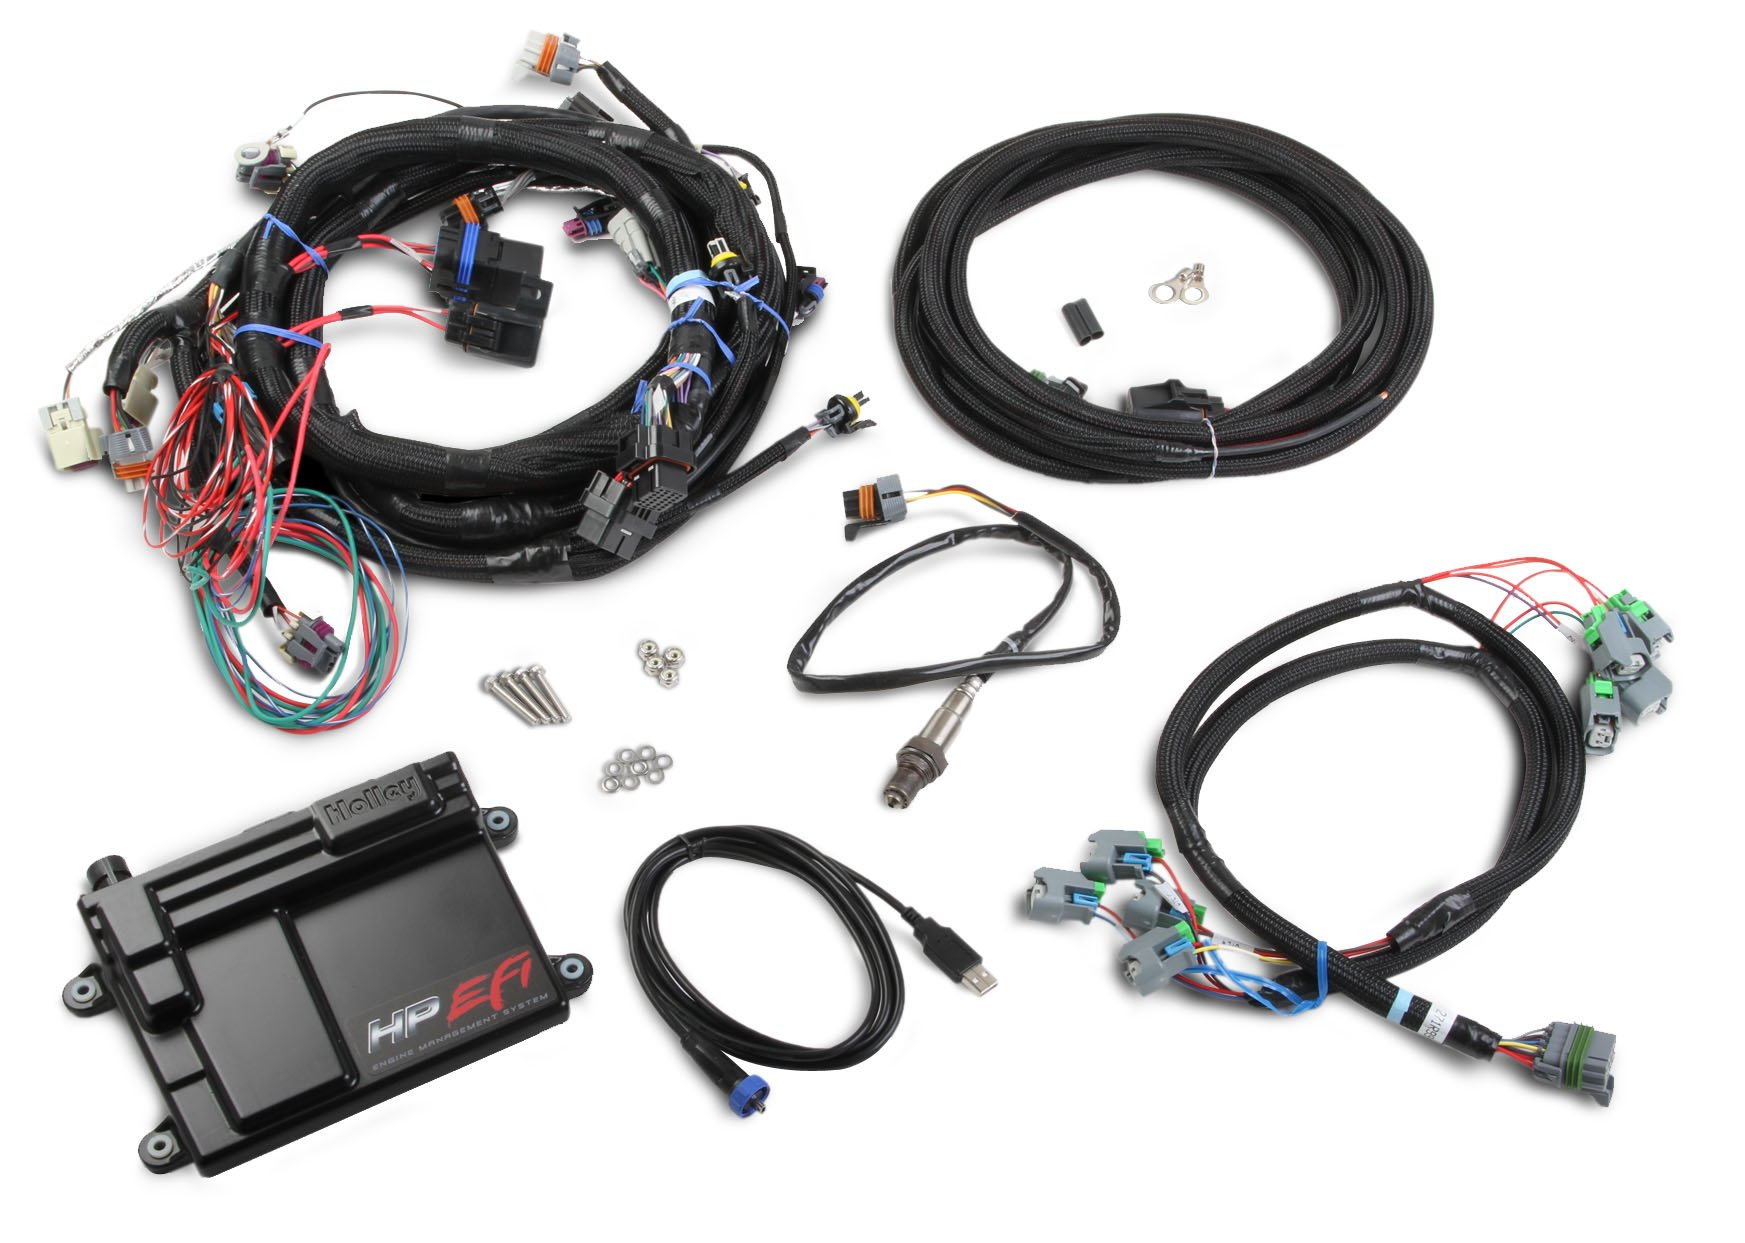 550 603 holley efi 550 603 hp efi ecu & harness kits Wire Harness Assembly at alyssarenee.co